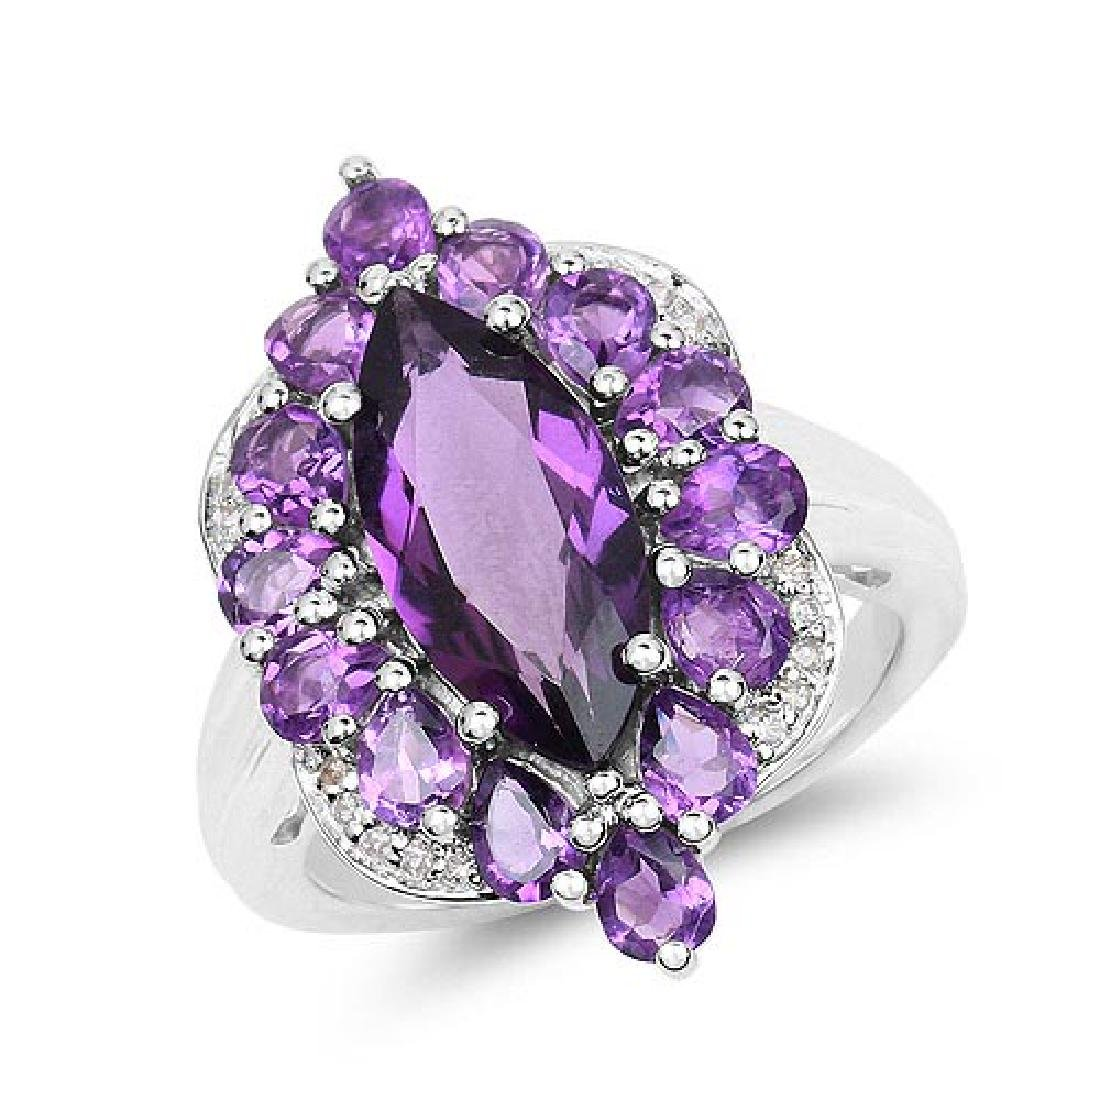 4.87 Carat Genuine Amethyst and White Topaz .925 Sterli